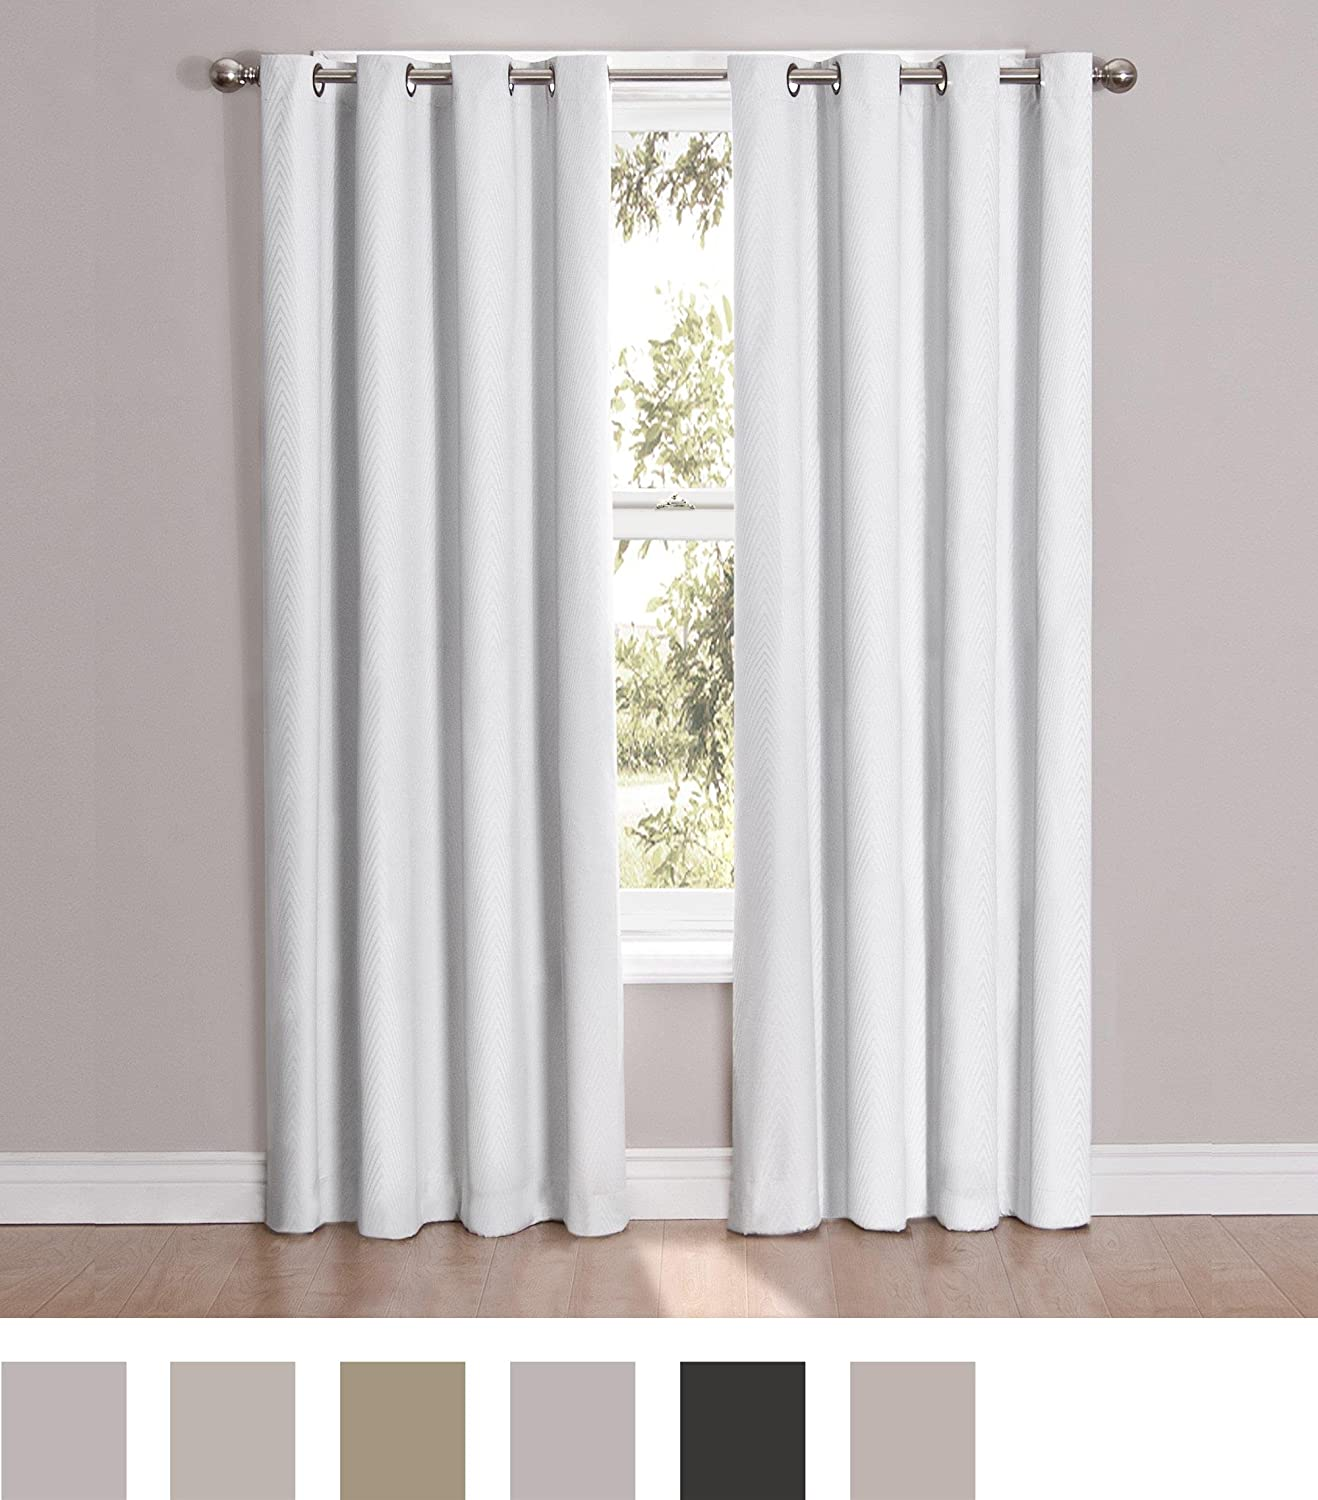 Amazon.com: Eclipse 12423052063WHI Cassidy 52-Inch by 63-Inch Blackout  Grommet Single Window Curtain Panel, White, (Reflects grey): Home & Kitchen